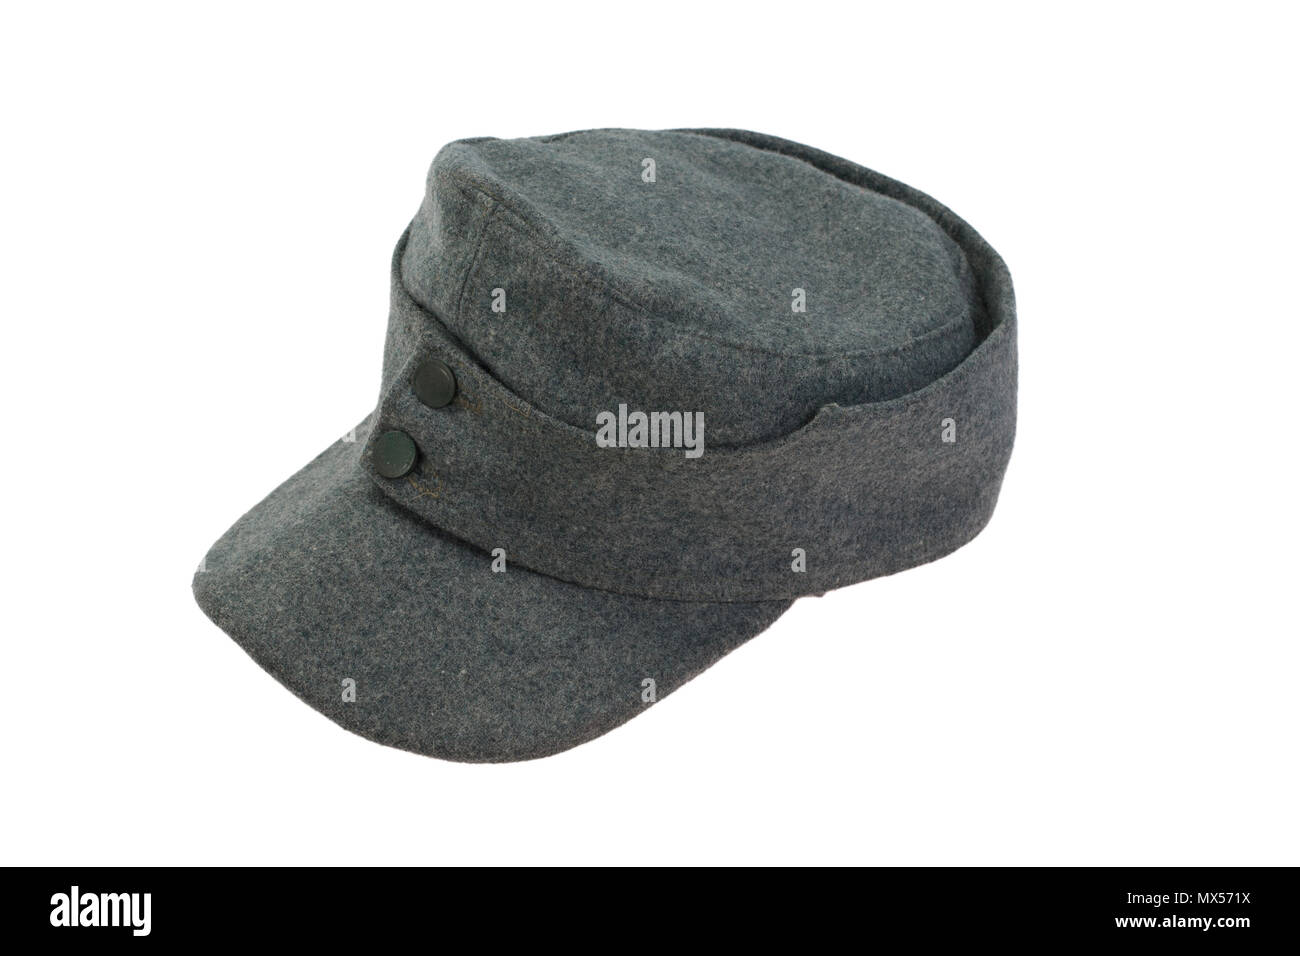 84cf355c66252 German Army field cap World War II period isolated on a white background -  Stock Image